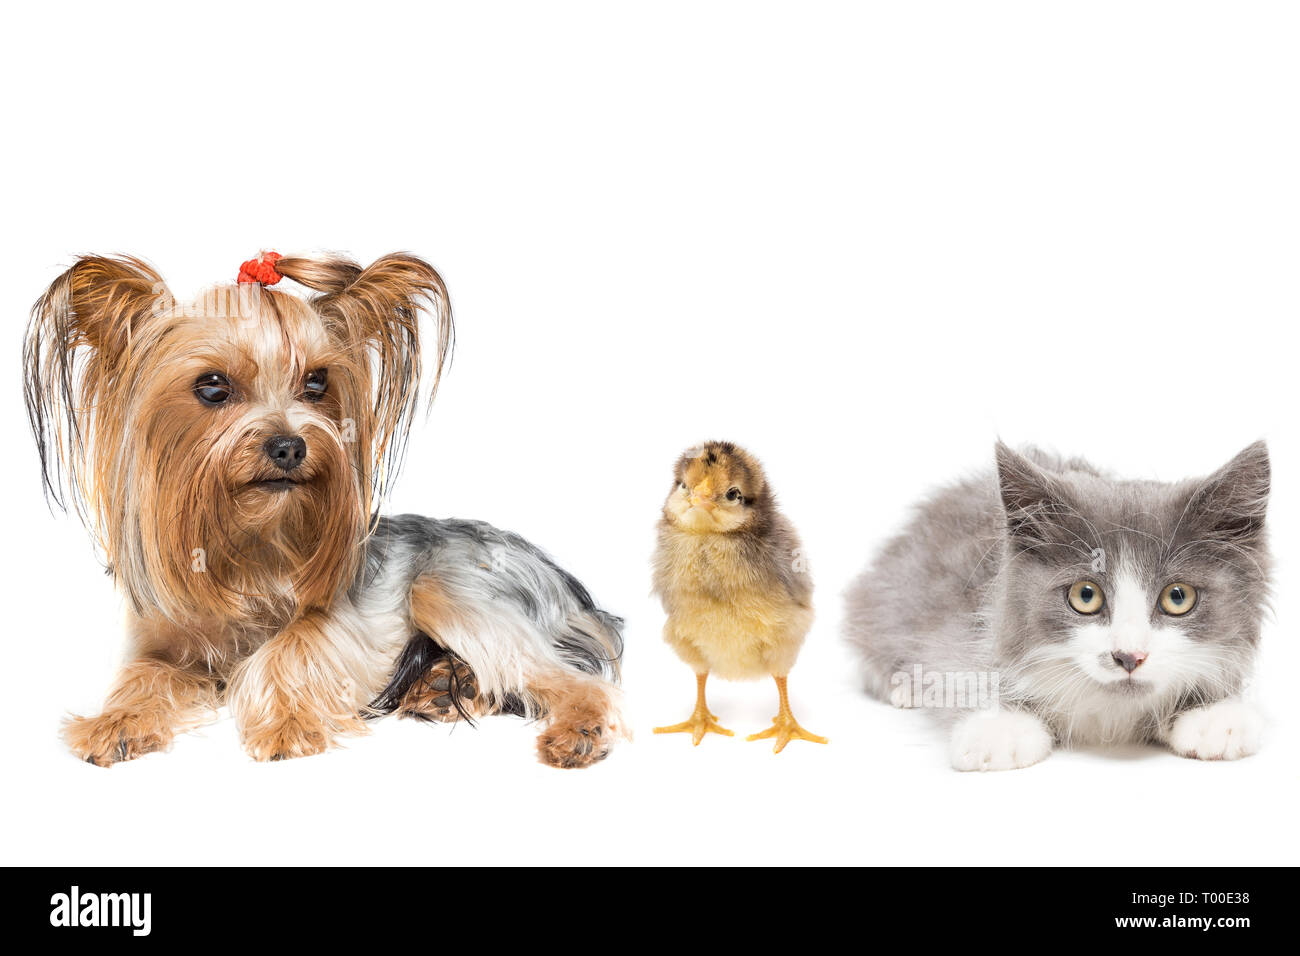 Dog, kitten and chick on white background - Stock Image